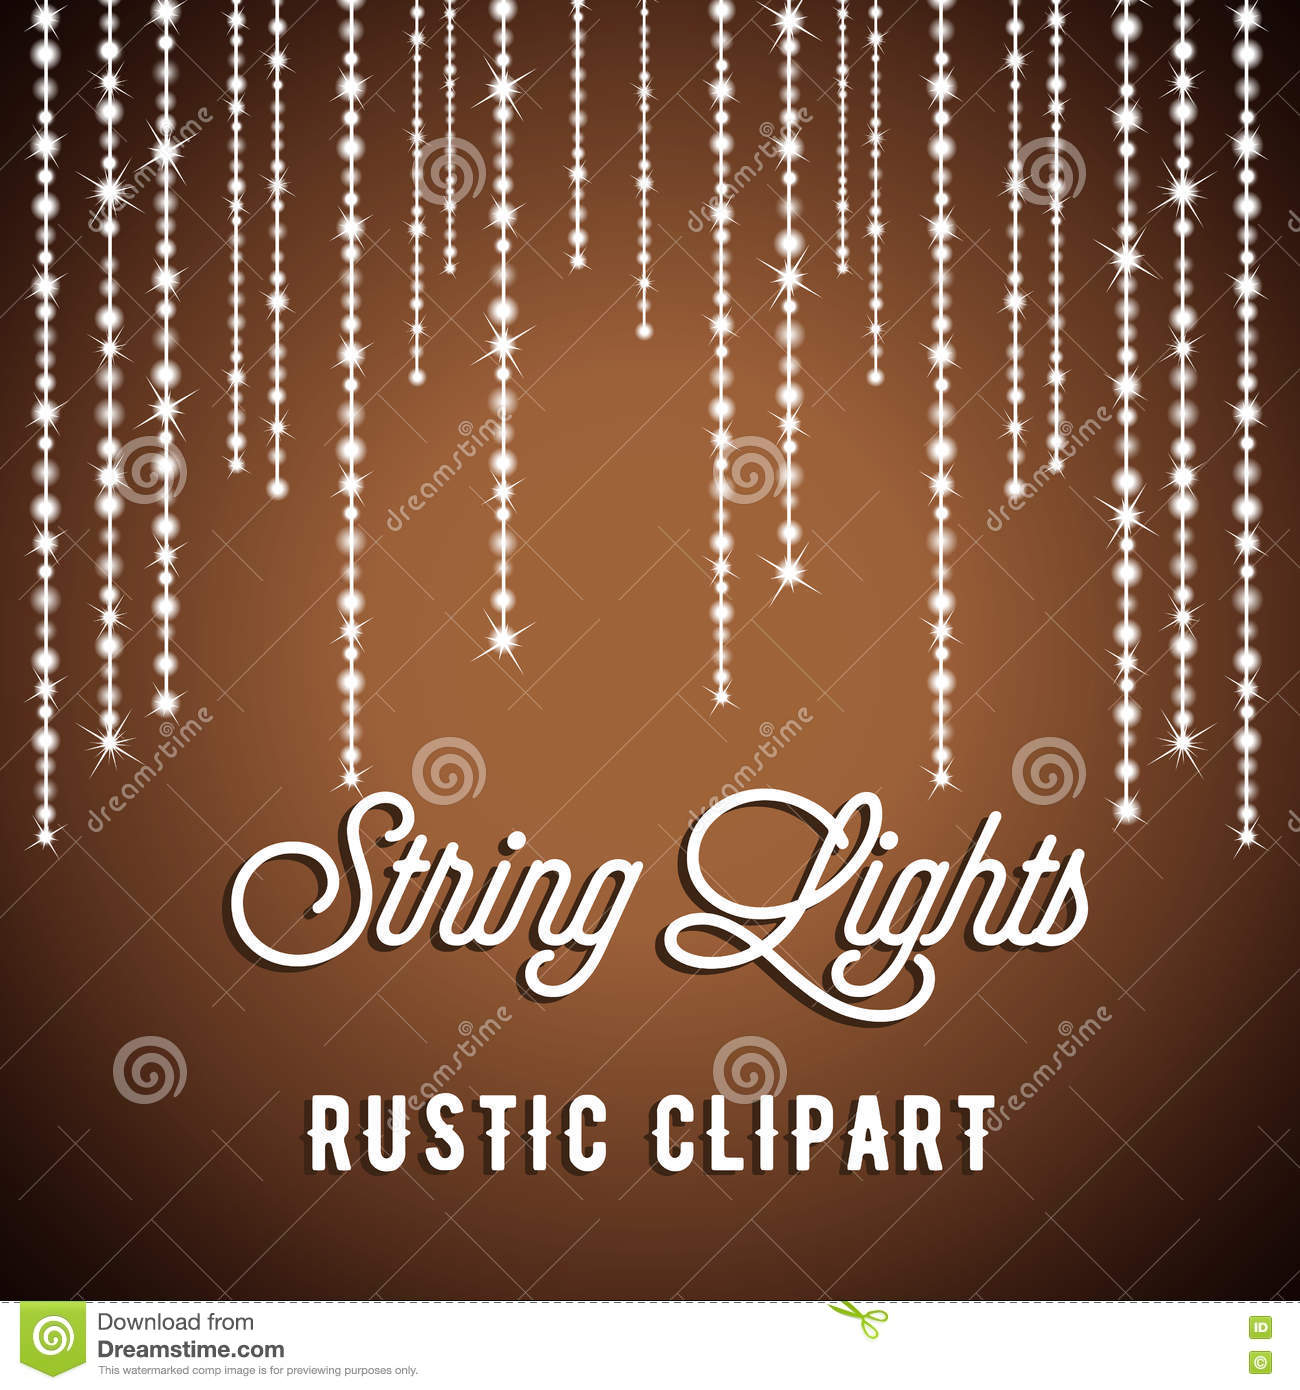 Rustic String Lights Vector Clipart EPS 10